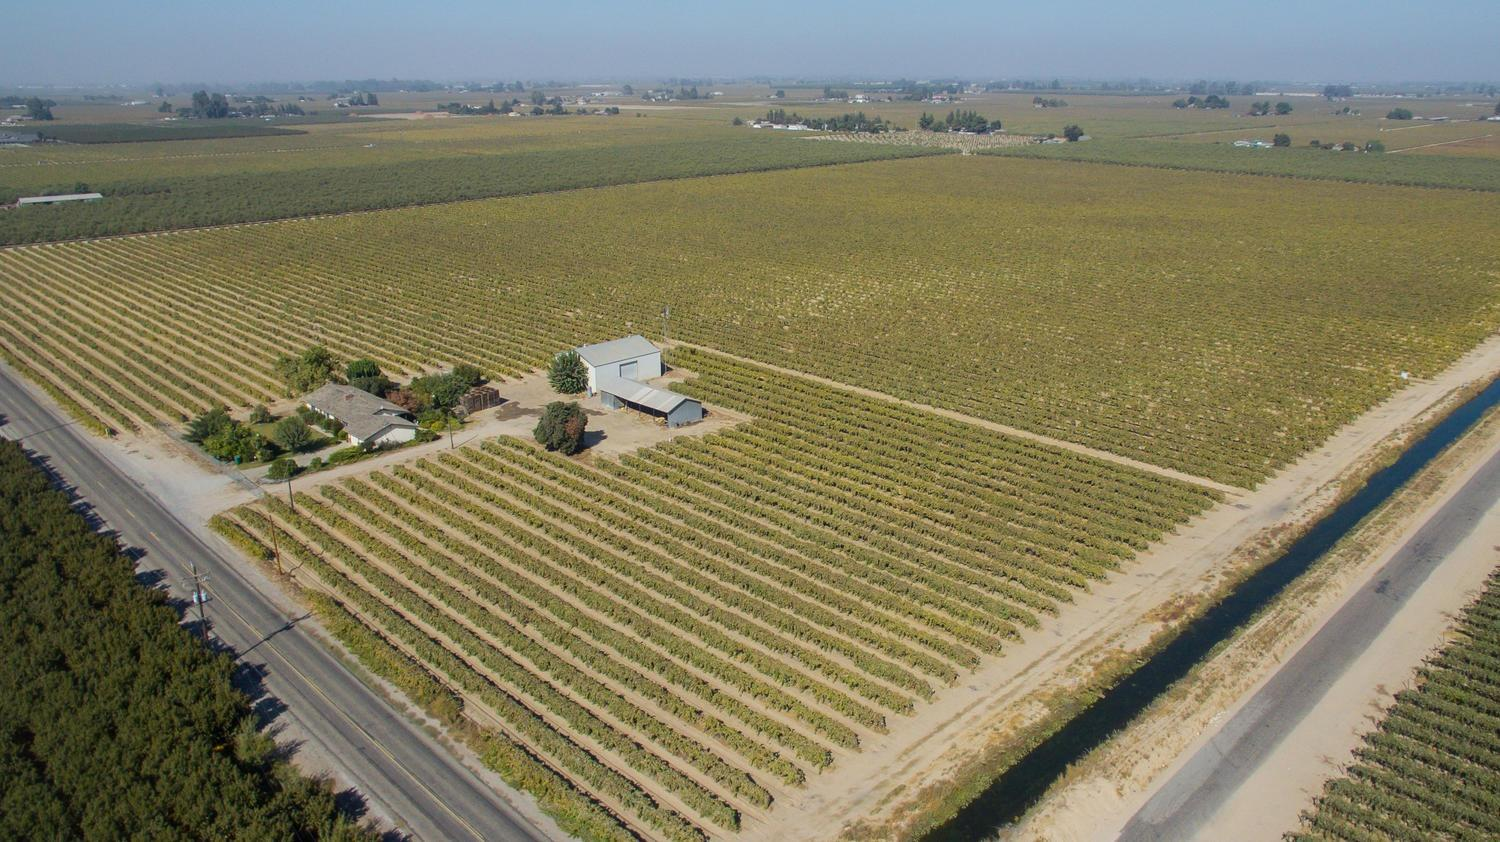 60 Acres, Vines, CID, Well Water, 40x40 red wood framed storage metal shed. Just West of HWY 43, and 99. Great Location Priced to sale. All the important features a Farmer needs. 2 sources of Water, location to easy access to the major Freeways, and located in the central Valley. please only drive by no stopping, make an appointment to walk the land with an agent.